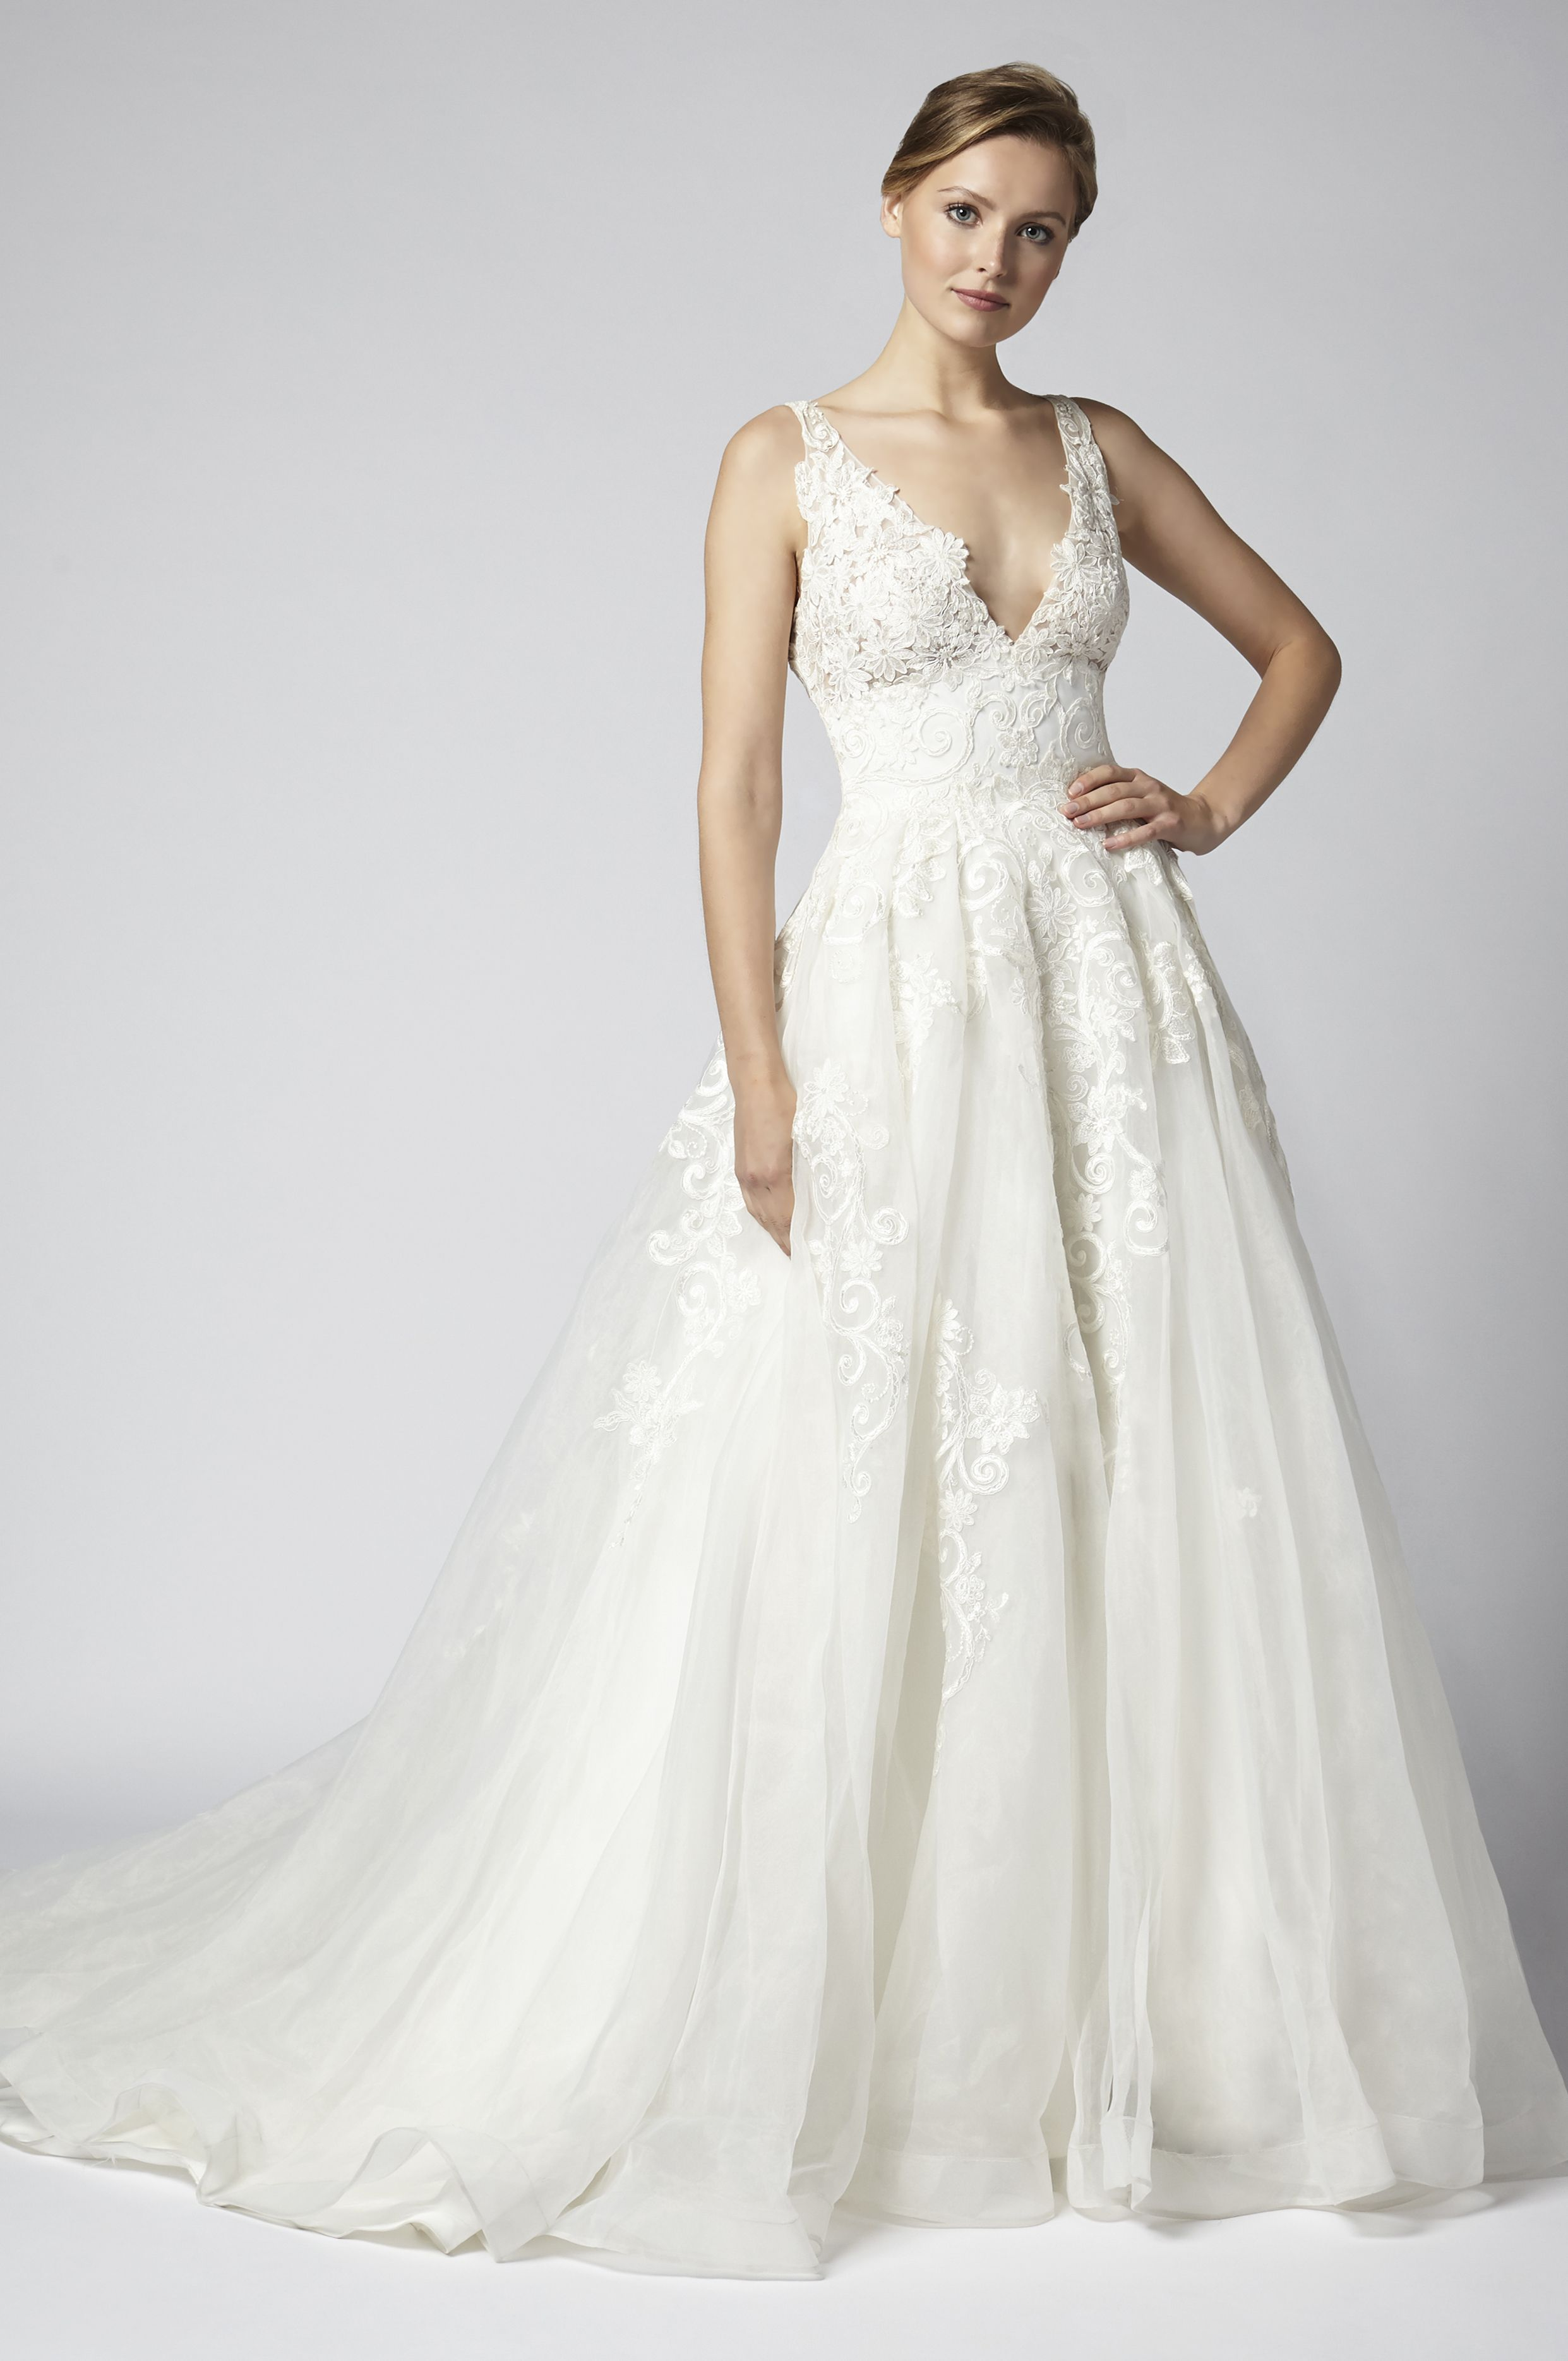 Sleeveless Lace Vneck Ball Gown Wedding Dress With Corset